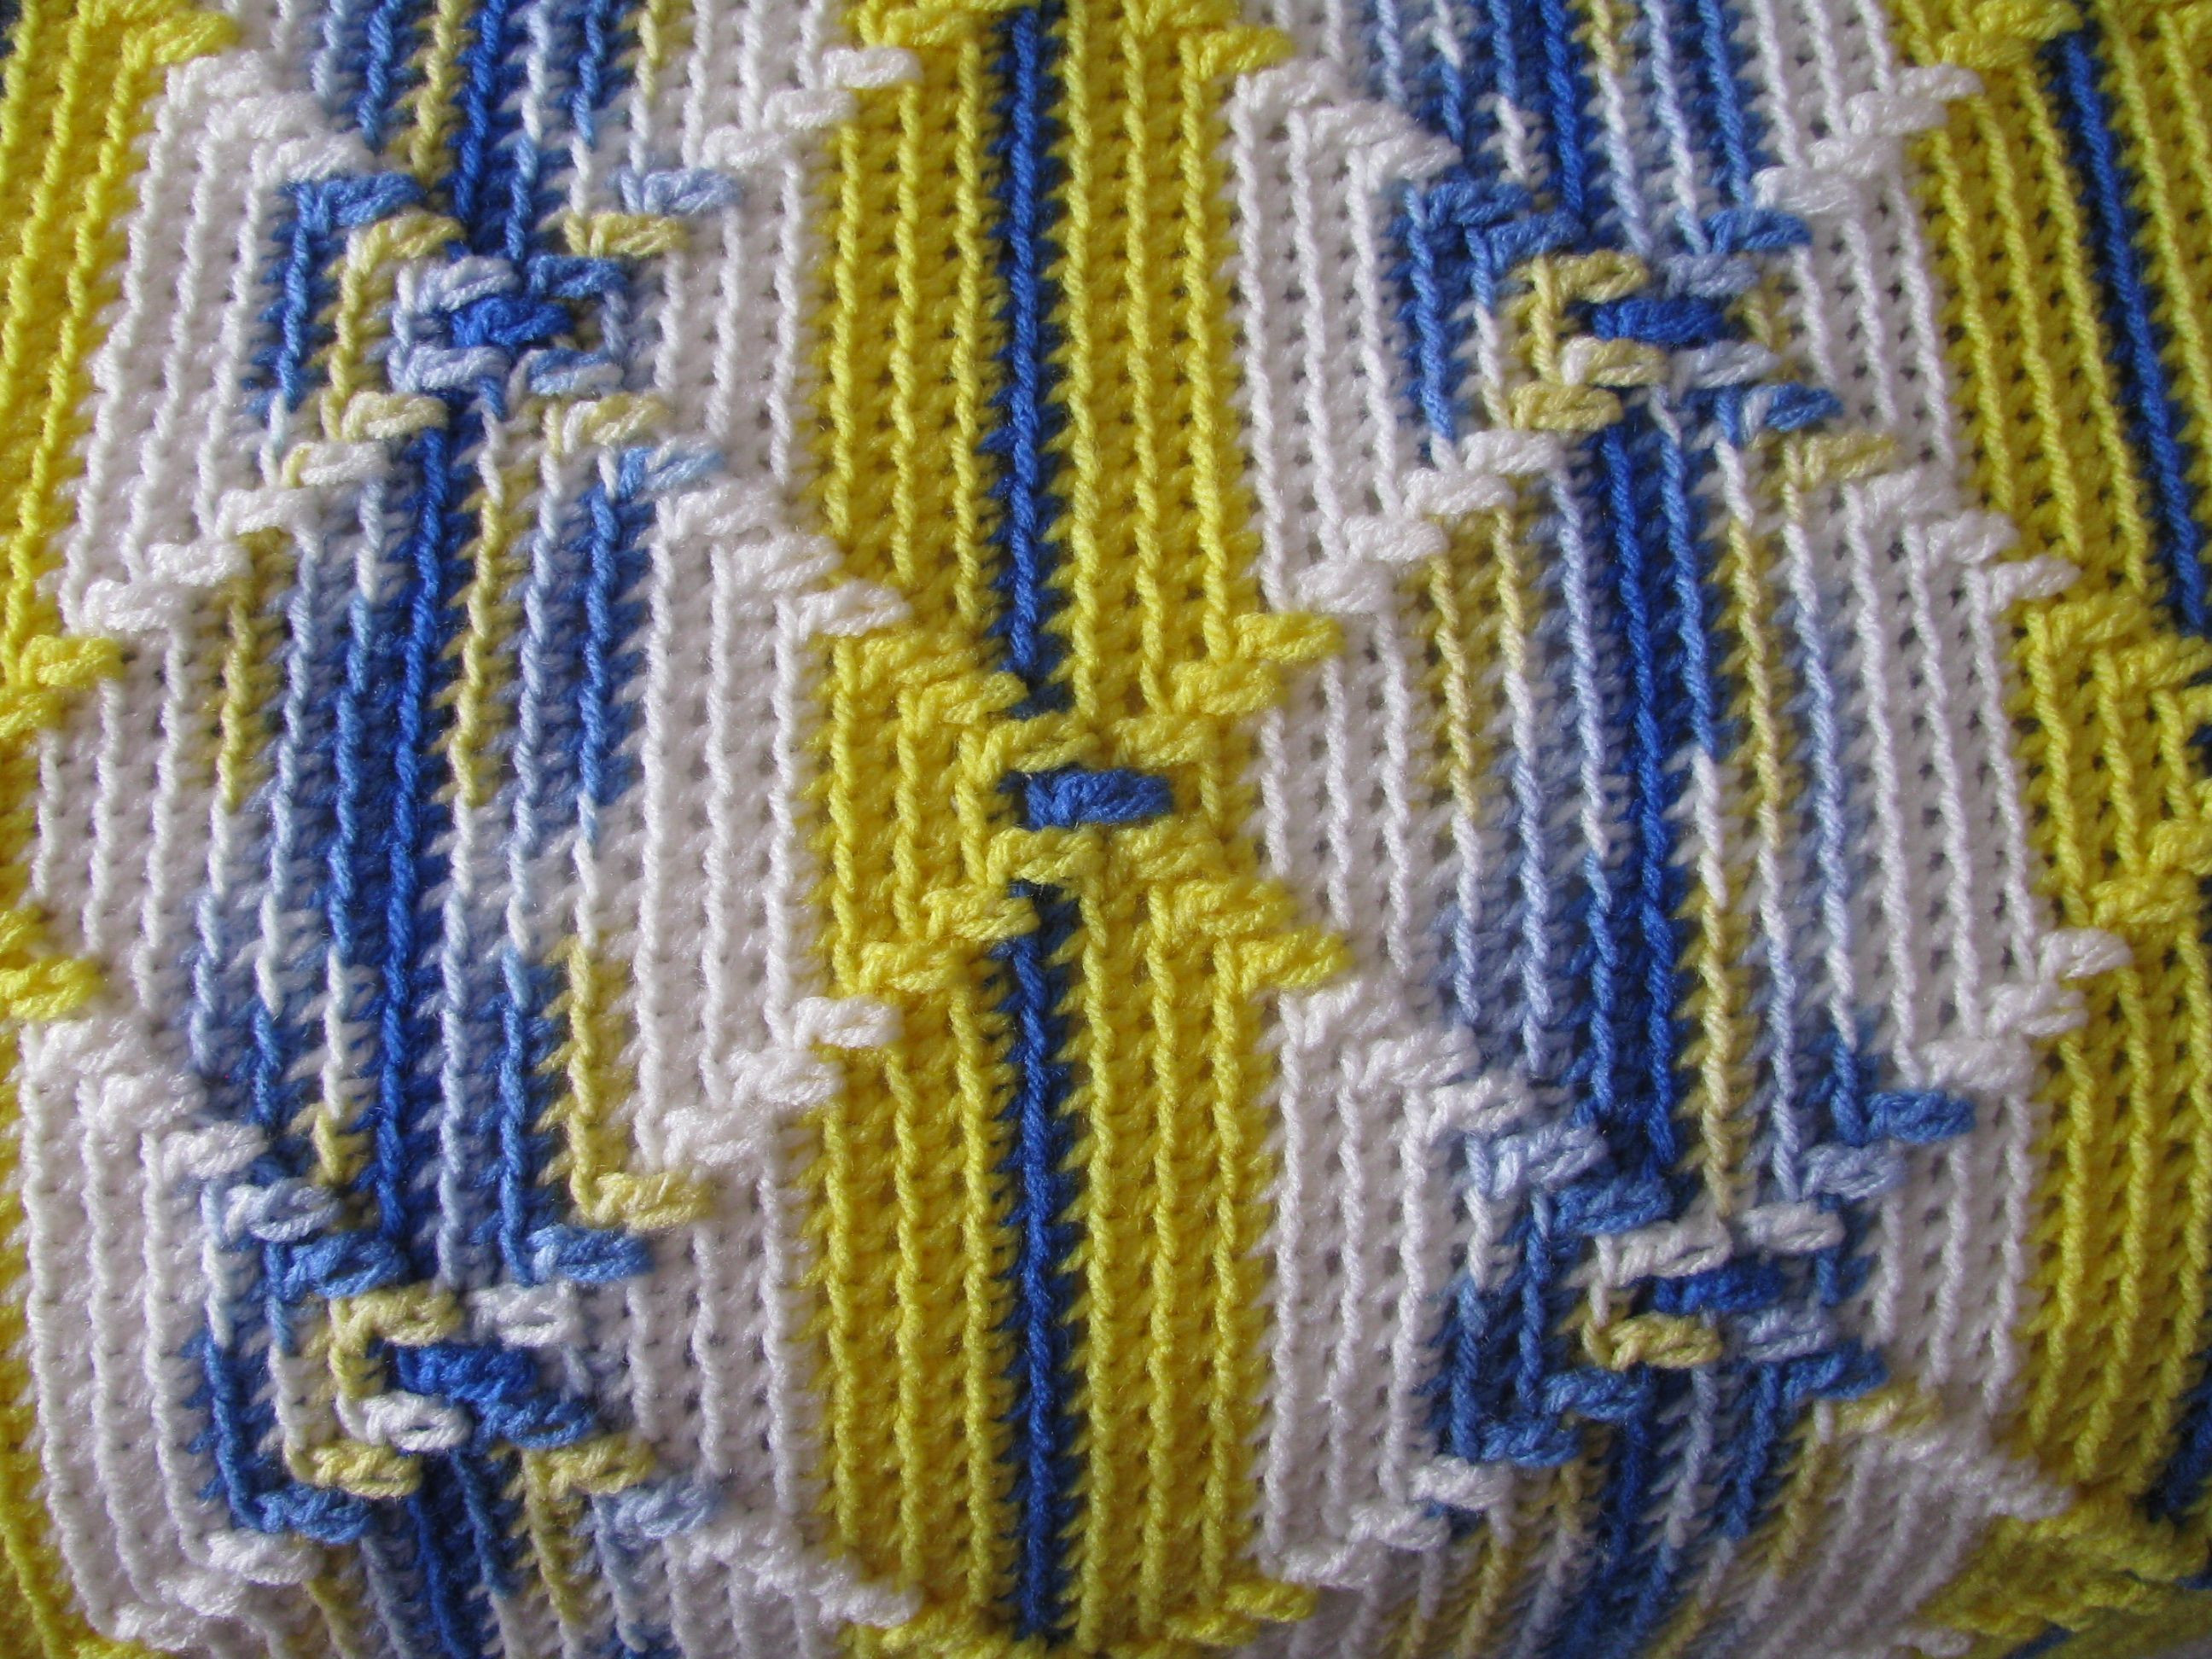 Elegant Crocheted Afghan Navajo Pattern In Blues and Yellows Navajo Afghan Pattern Crochet Of Marvelous 42 Images Navajo Afghan Pattern Crochet